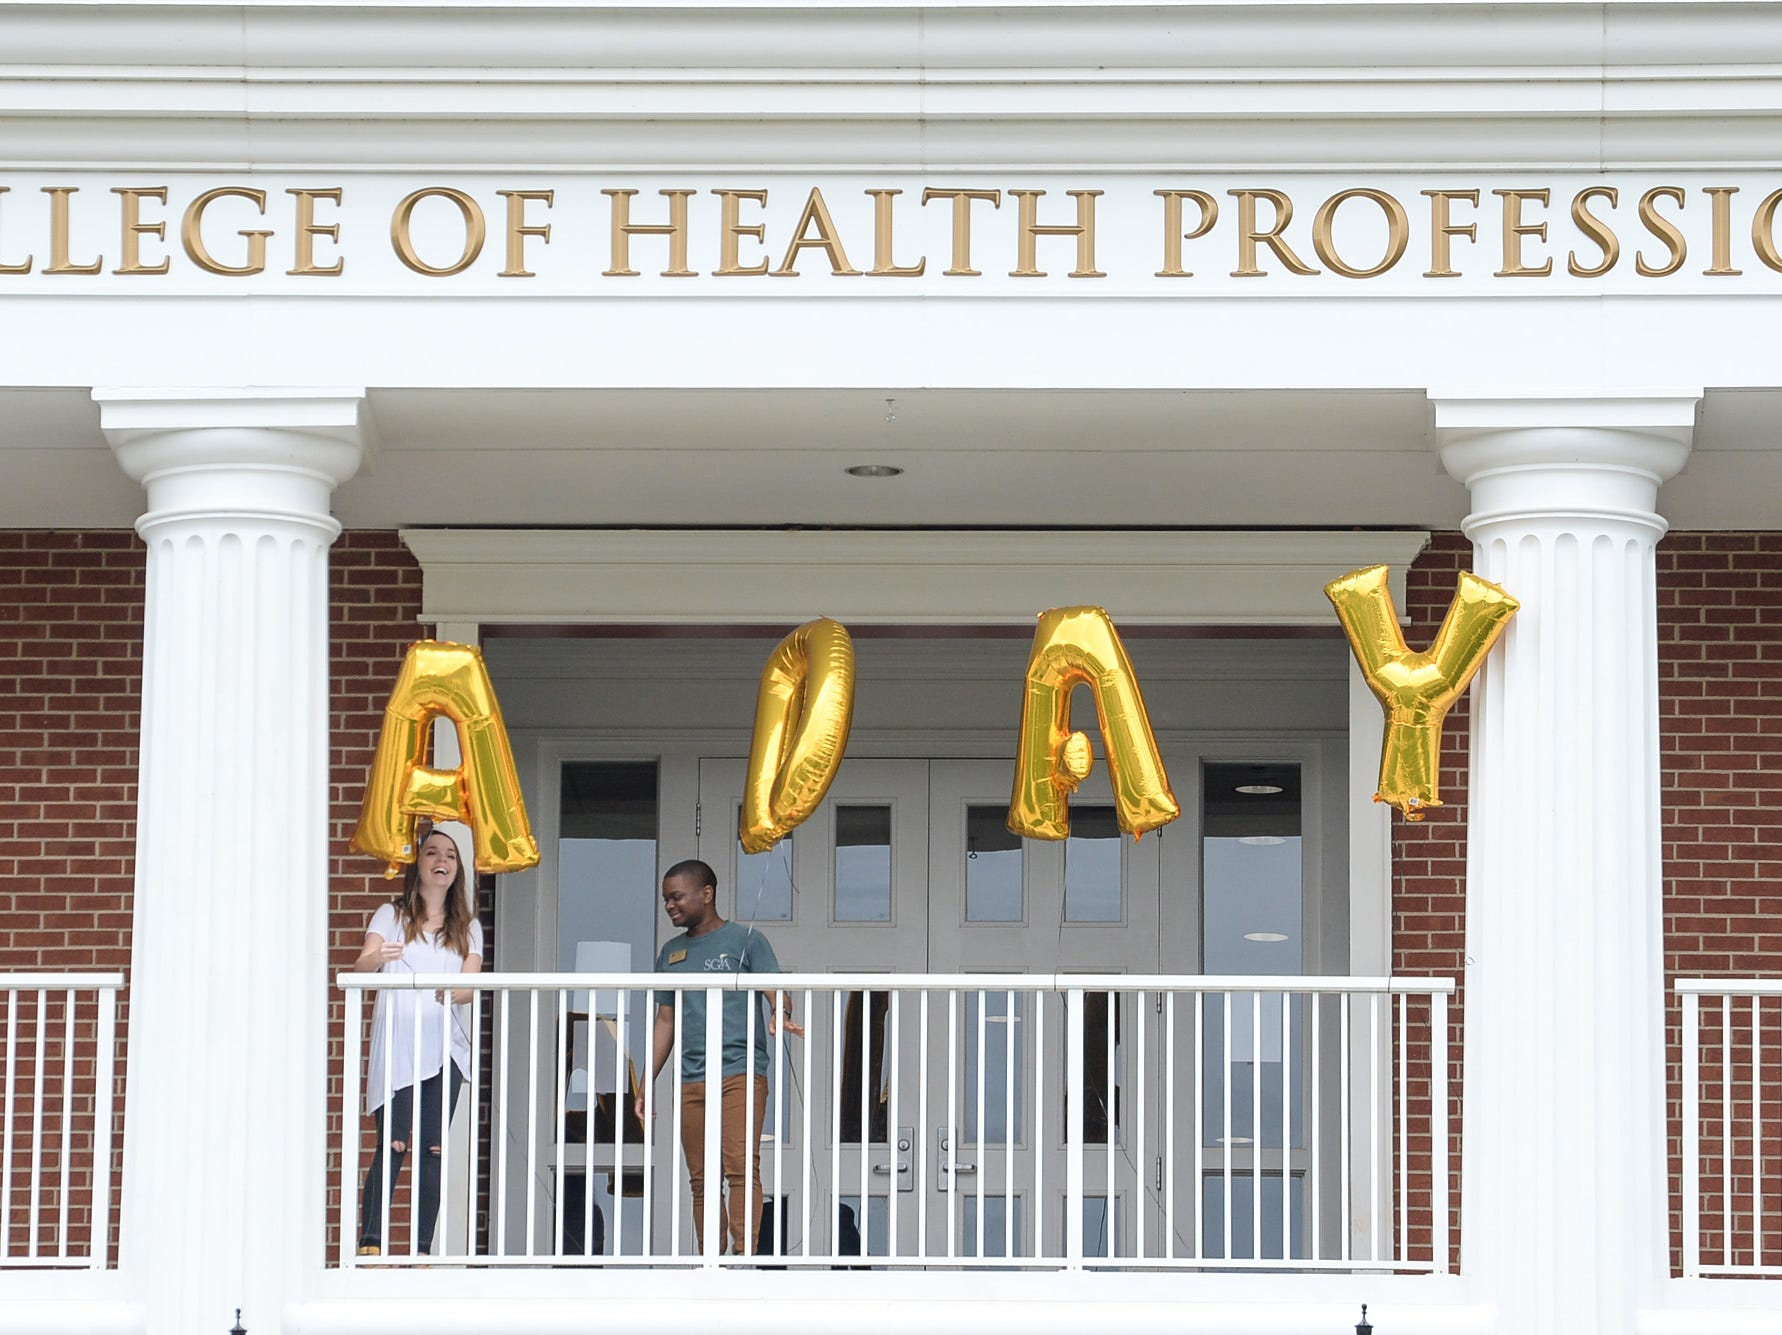 Abigail Carr, left, and Chris Jones, students at Anderson University, plays balloons on the College of Health Profession building during A Day to Give at Anderson University Thursday.  The 24-hour fundraising drive event is meant to give people from the school a chance to participate in events on campus to recognize the past, present, and future.